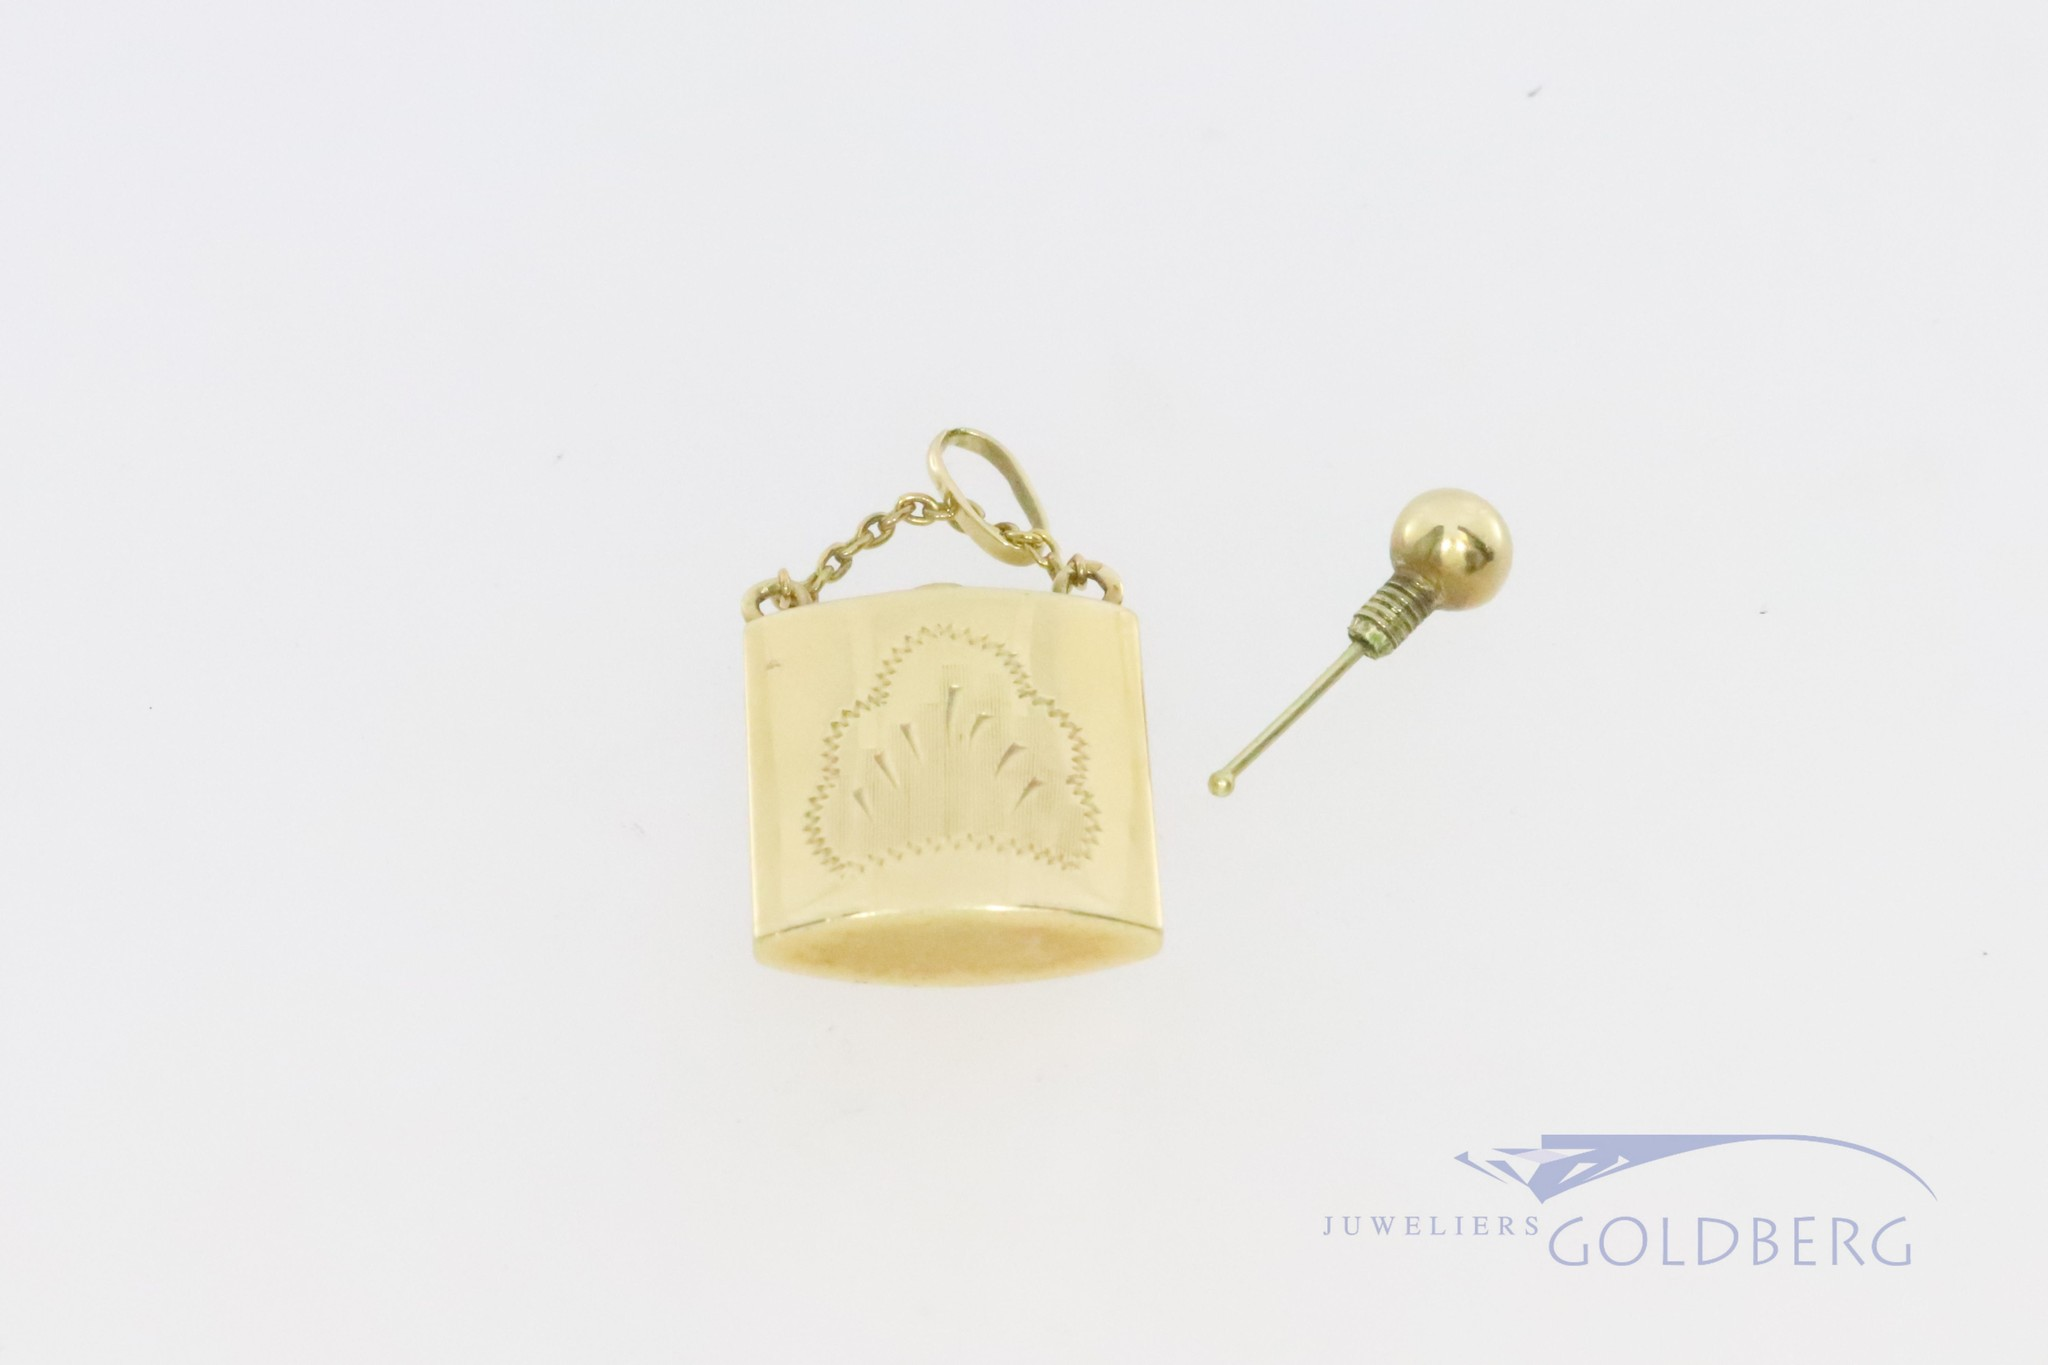 14k pendant from a perfume bottle